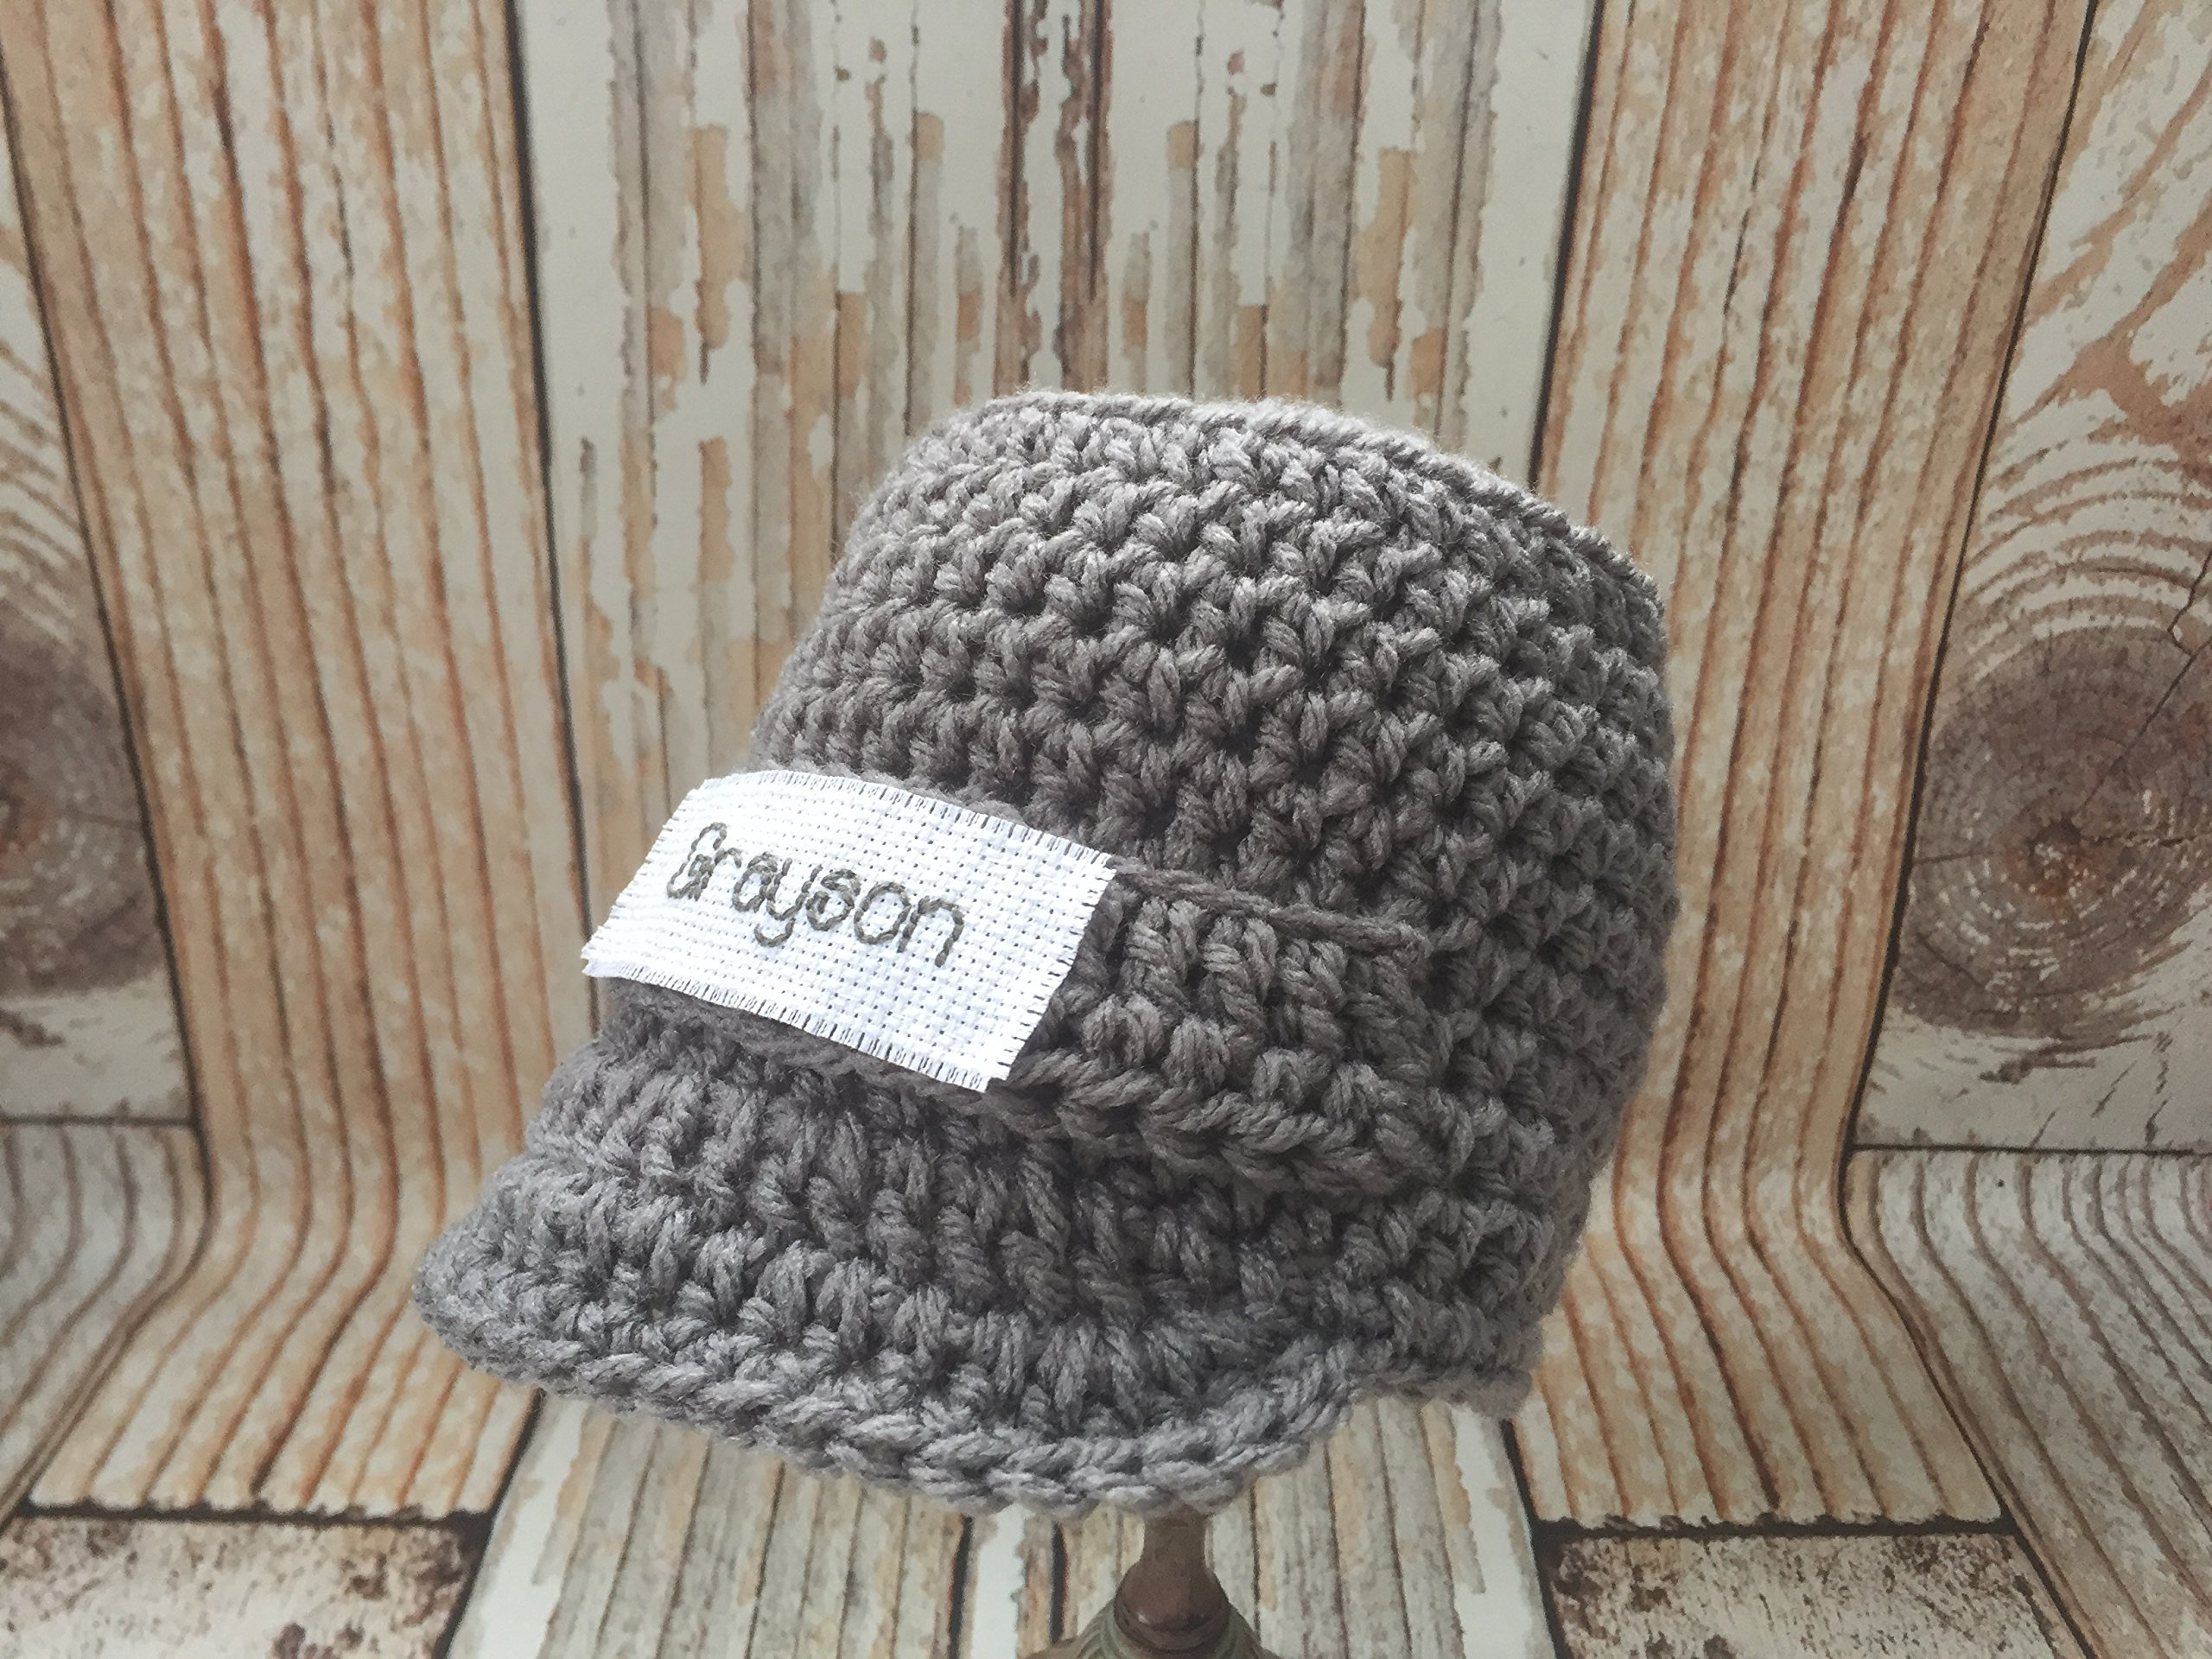 51b84f0e Get Quotations · Personalized Baby Boy Hat, Monogram Baby Clothes, Newborn  Photo Props, Winter Crochet Baby